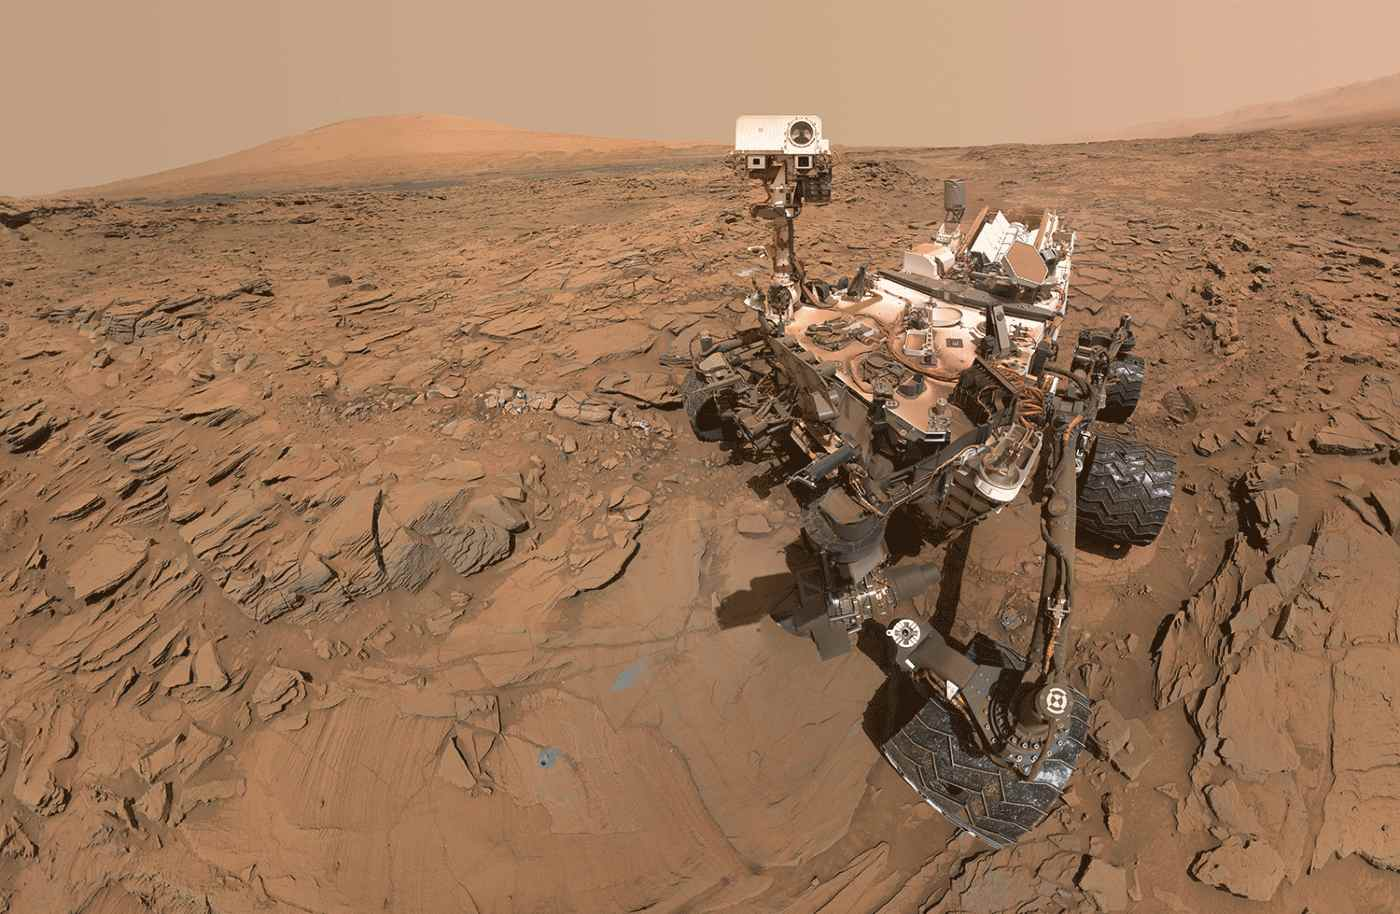 Today Marks 3000 Days on Mars For the Genius 'Curiosity Rover' – See NASA Celebration in Photos